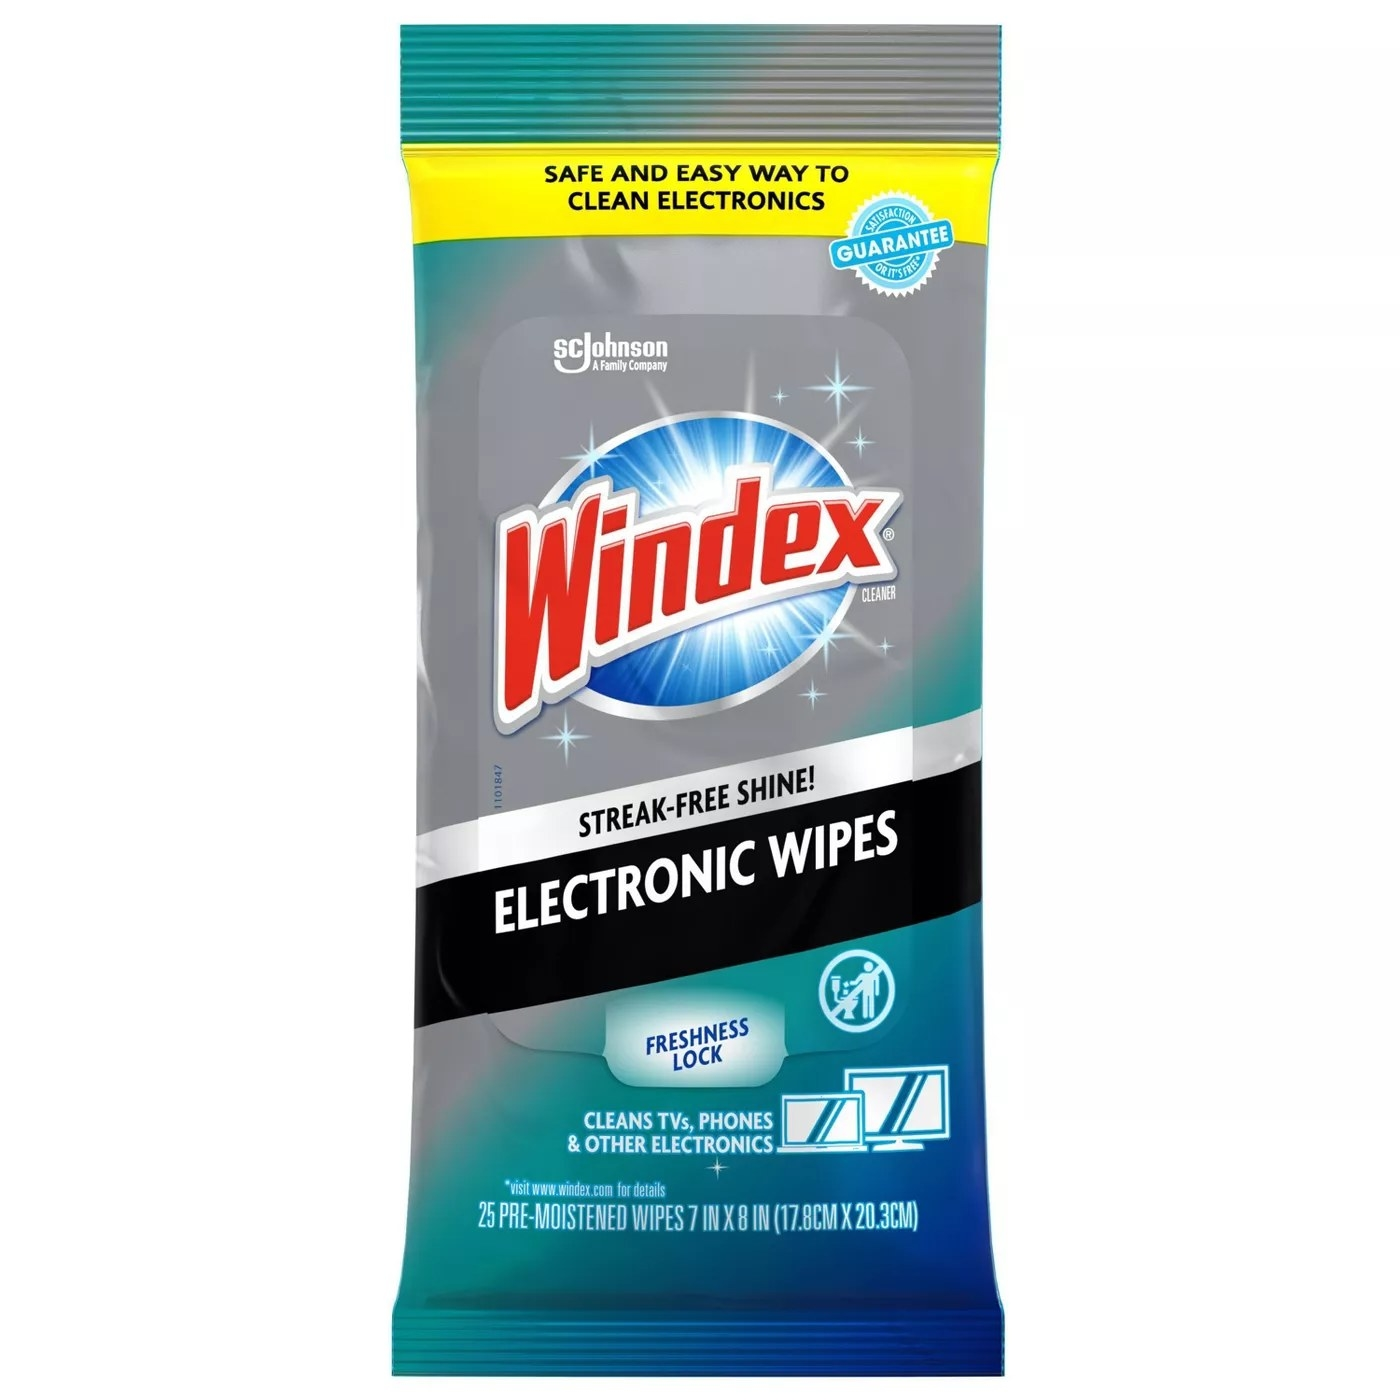 A pack of Windex's wipes that are safe to use on TVs, phones, and other electronics and leave a streak-free shine